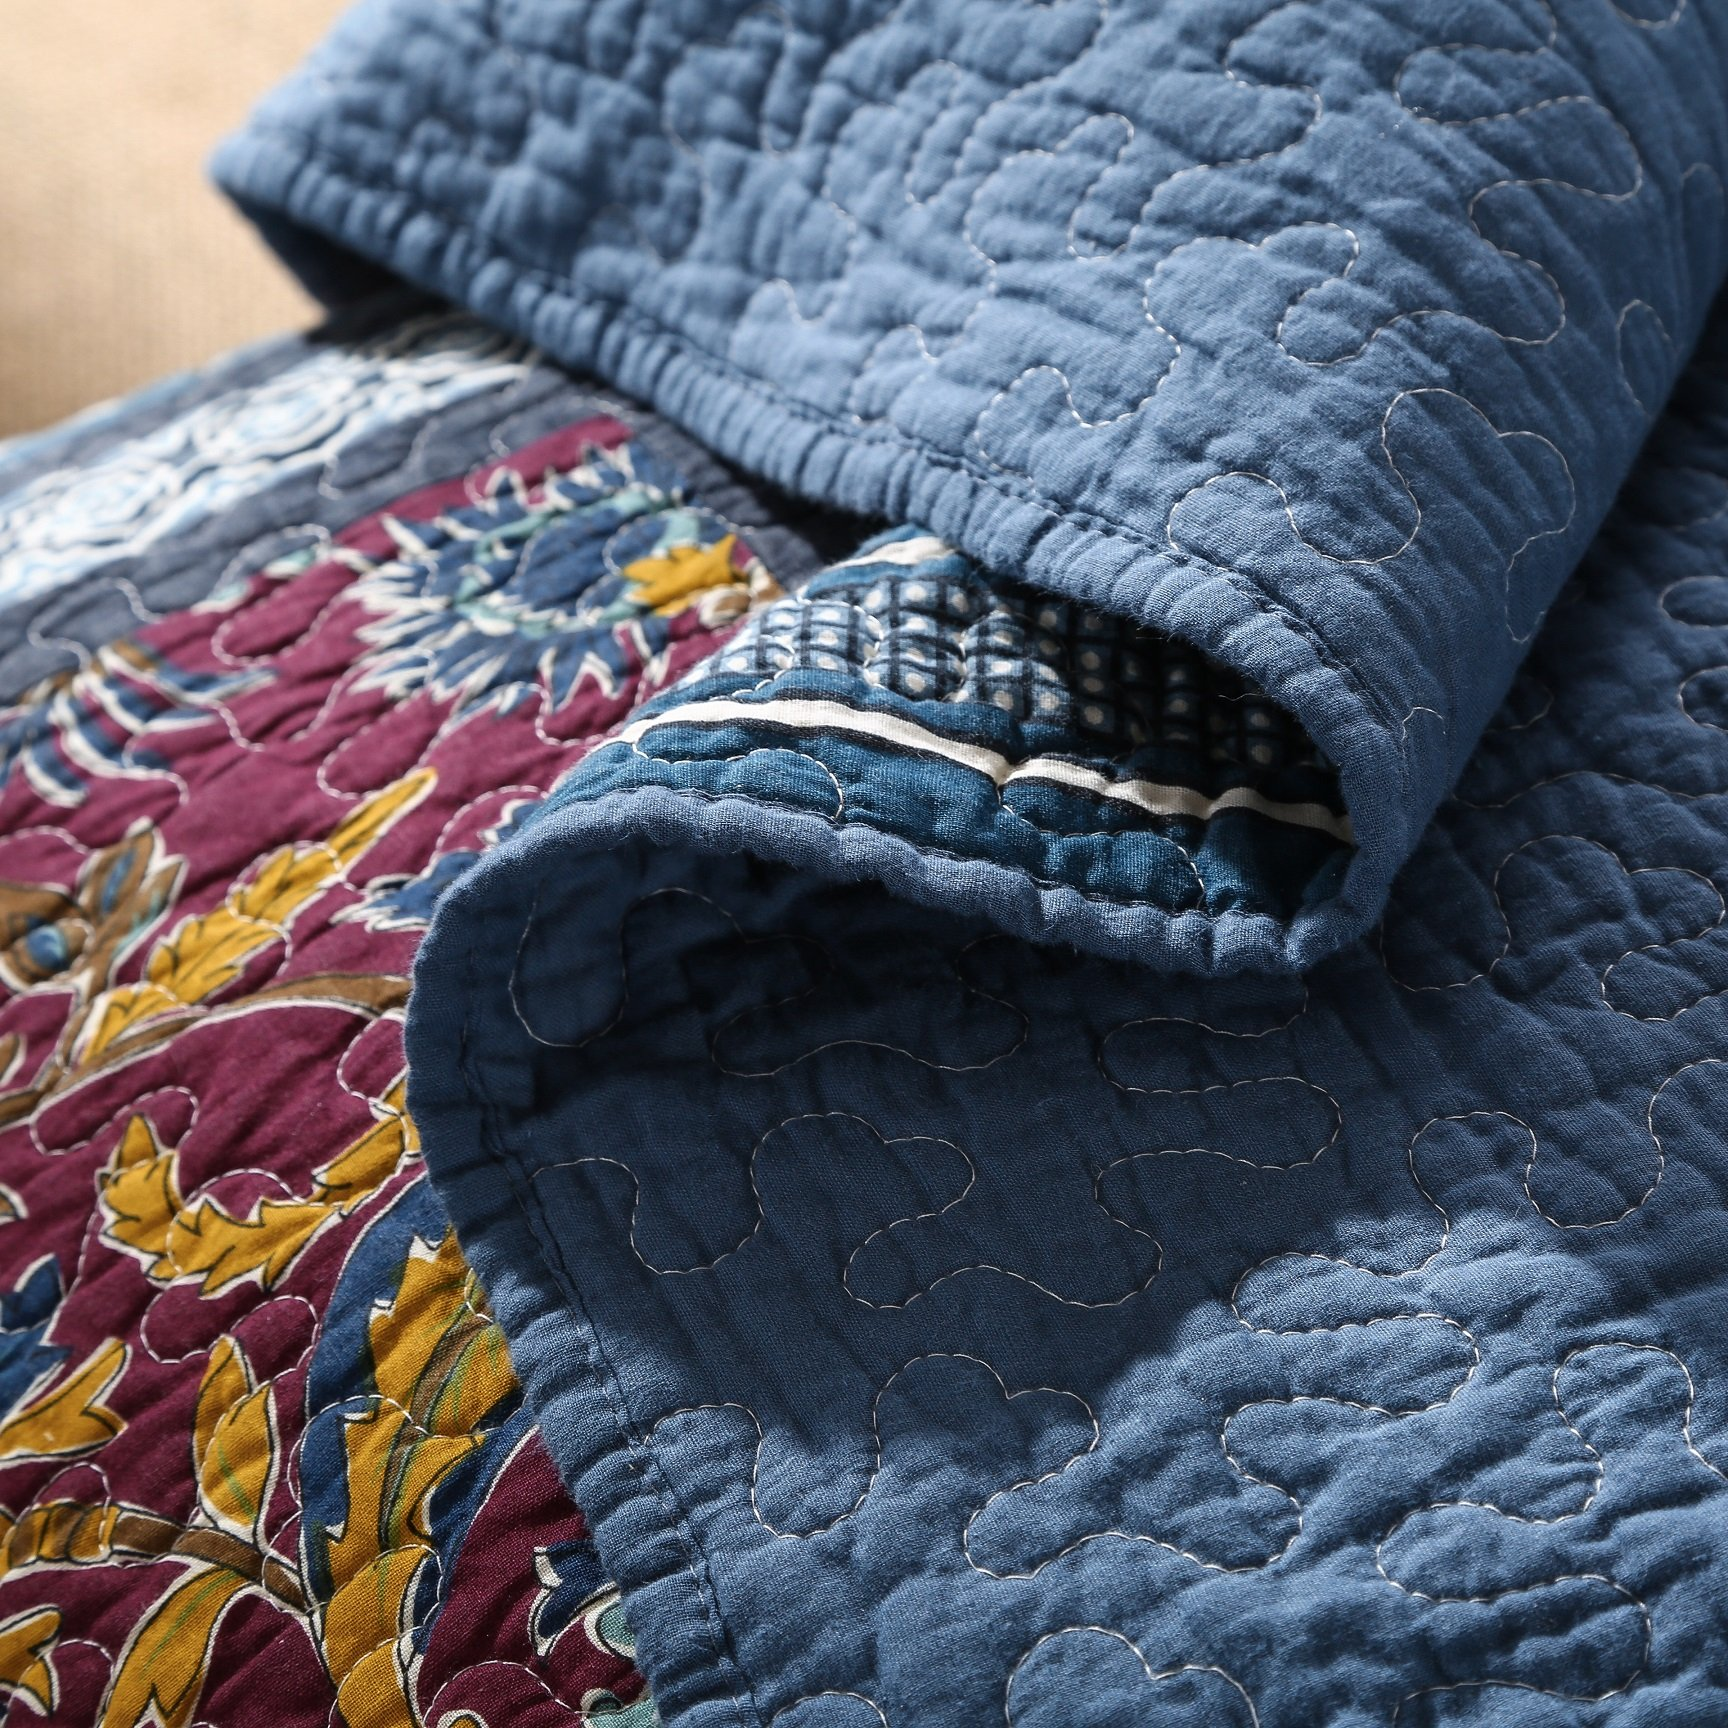 DaDa Bedding Bohemian Midnight Ocean Blue Sea Reversible Real Patchwork Quilted Bedspread Set - Dark Navy Floral Multi-Color Print - Queen - 3-Pieces by DaDa Bedding Collection (Image #5)